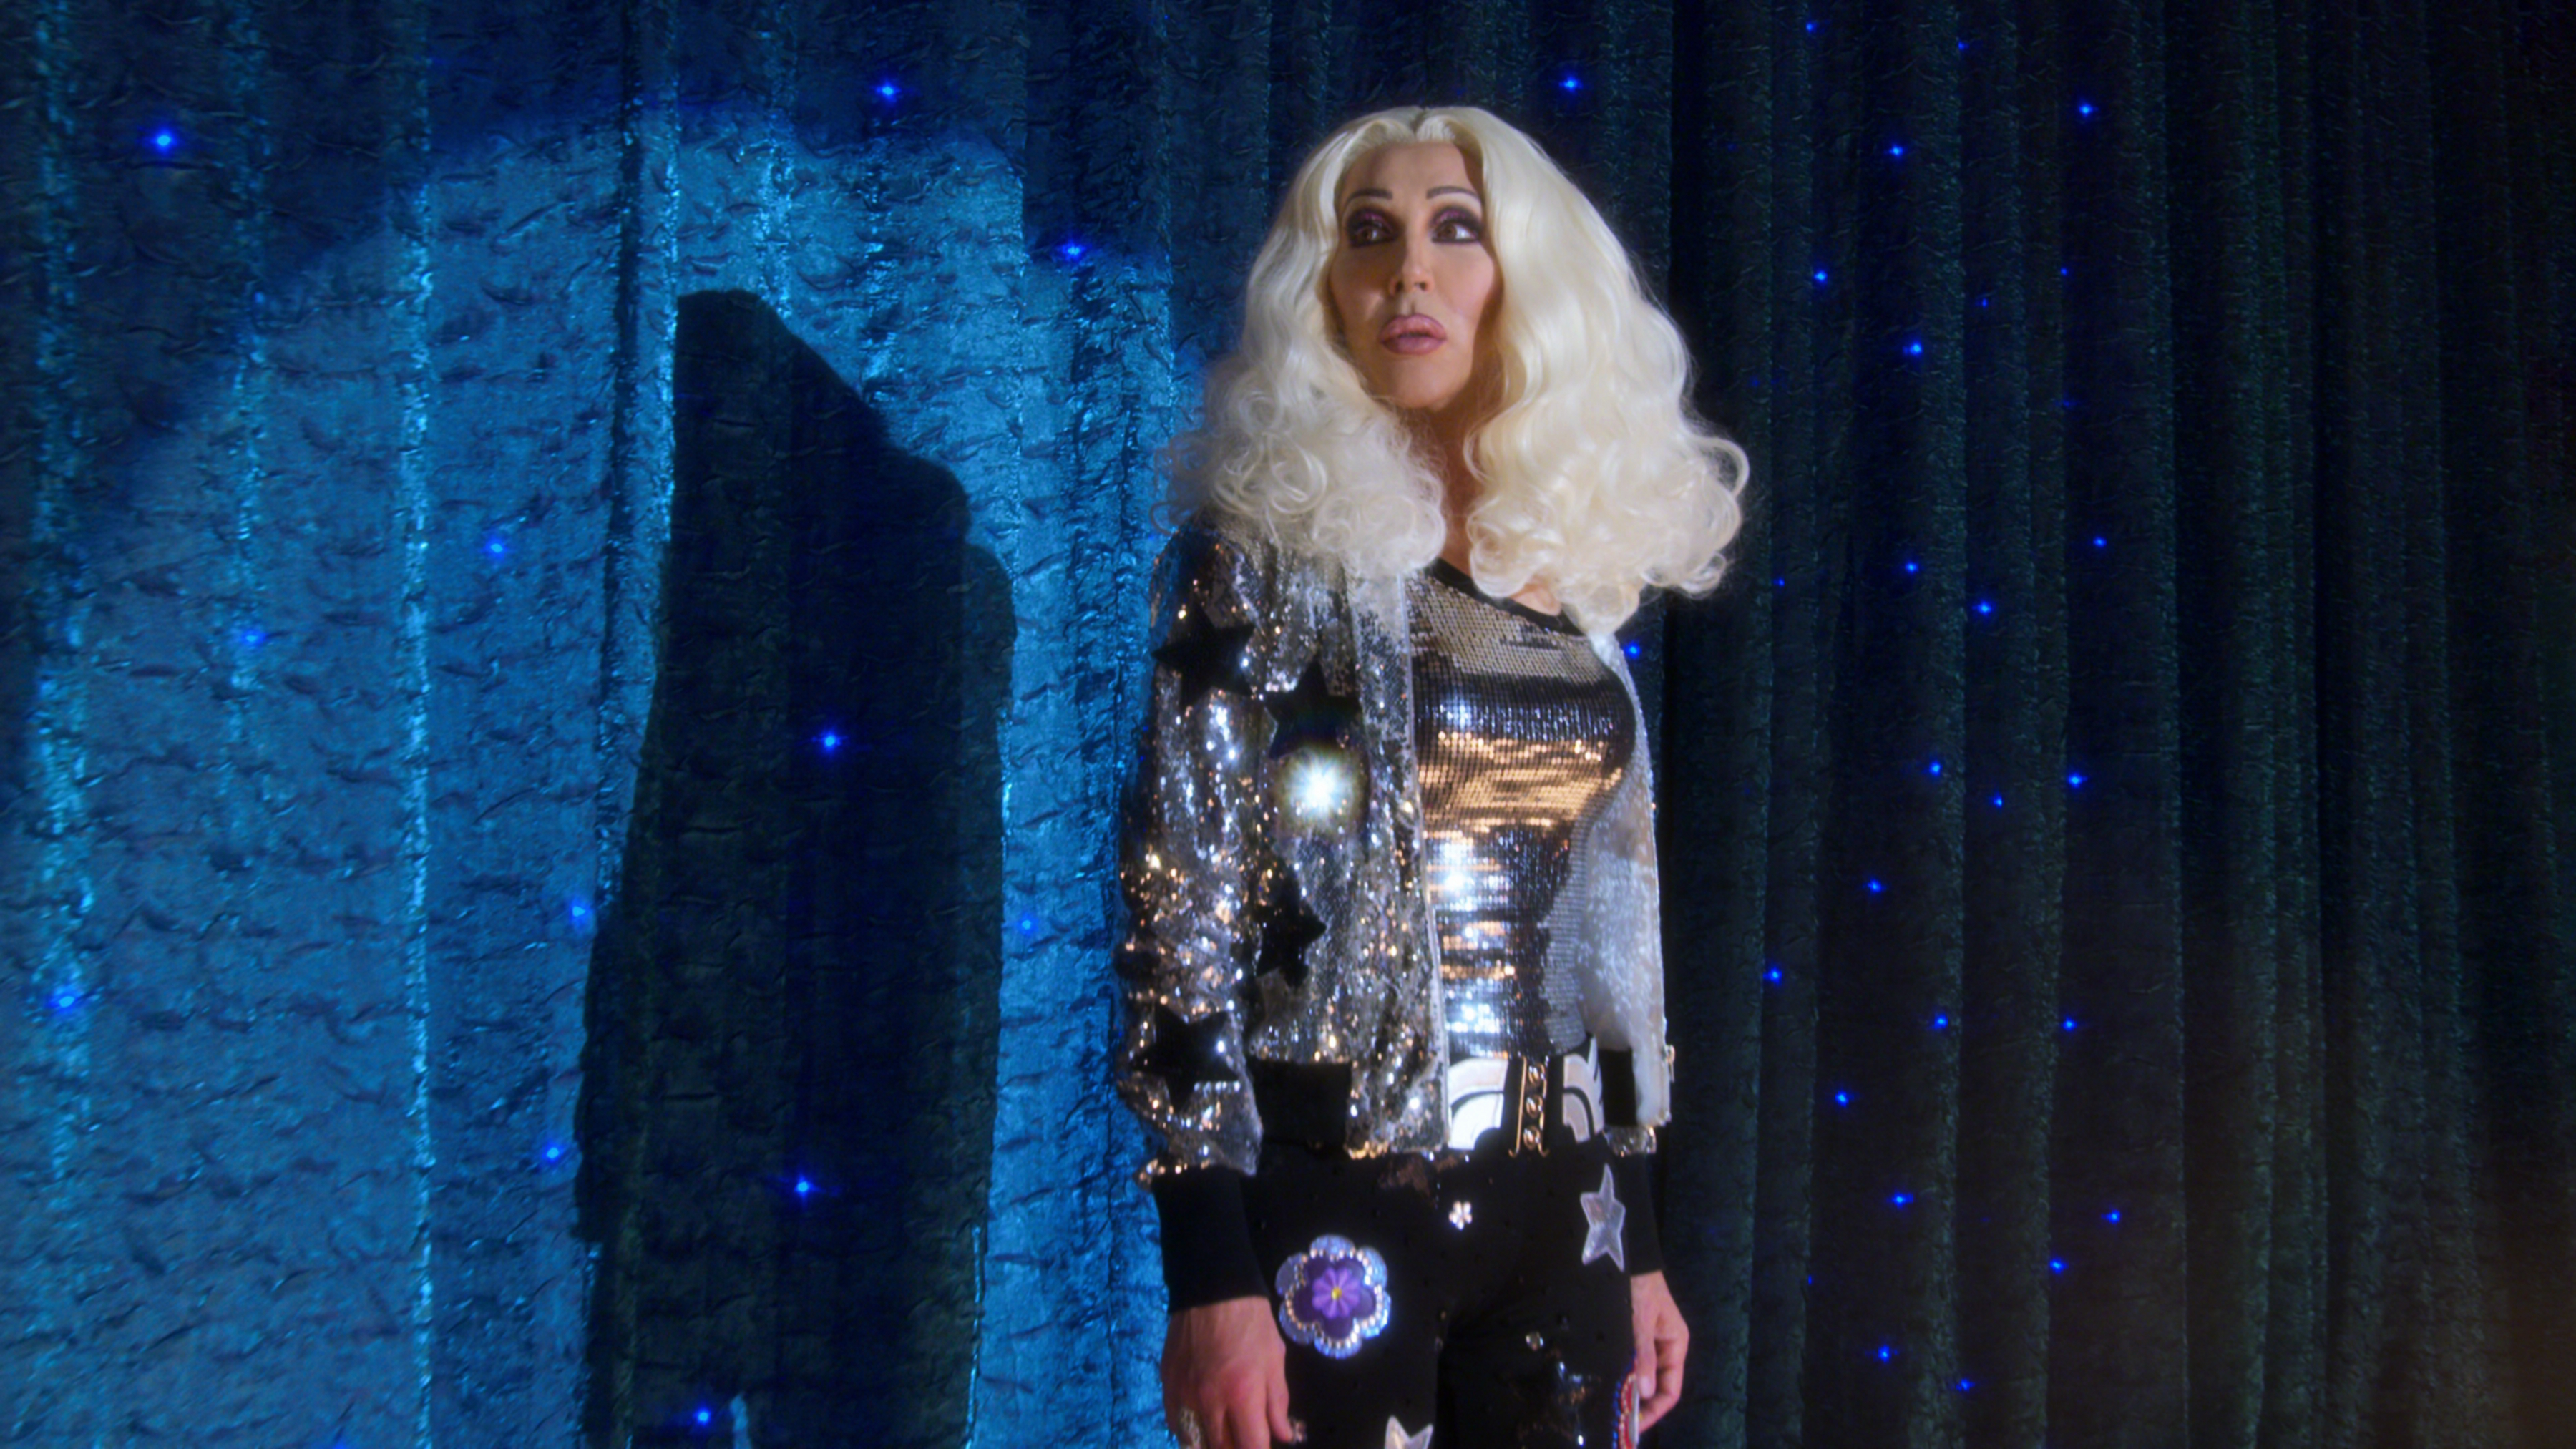 Chad Michaels in AJ and the Queen